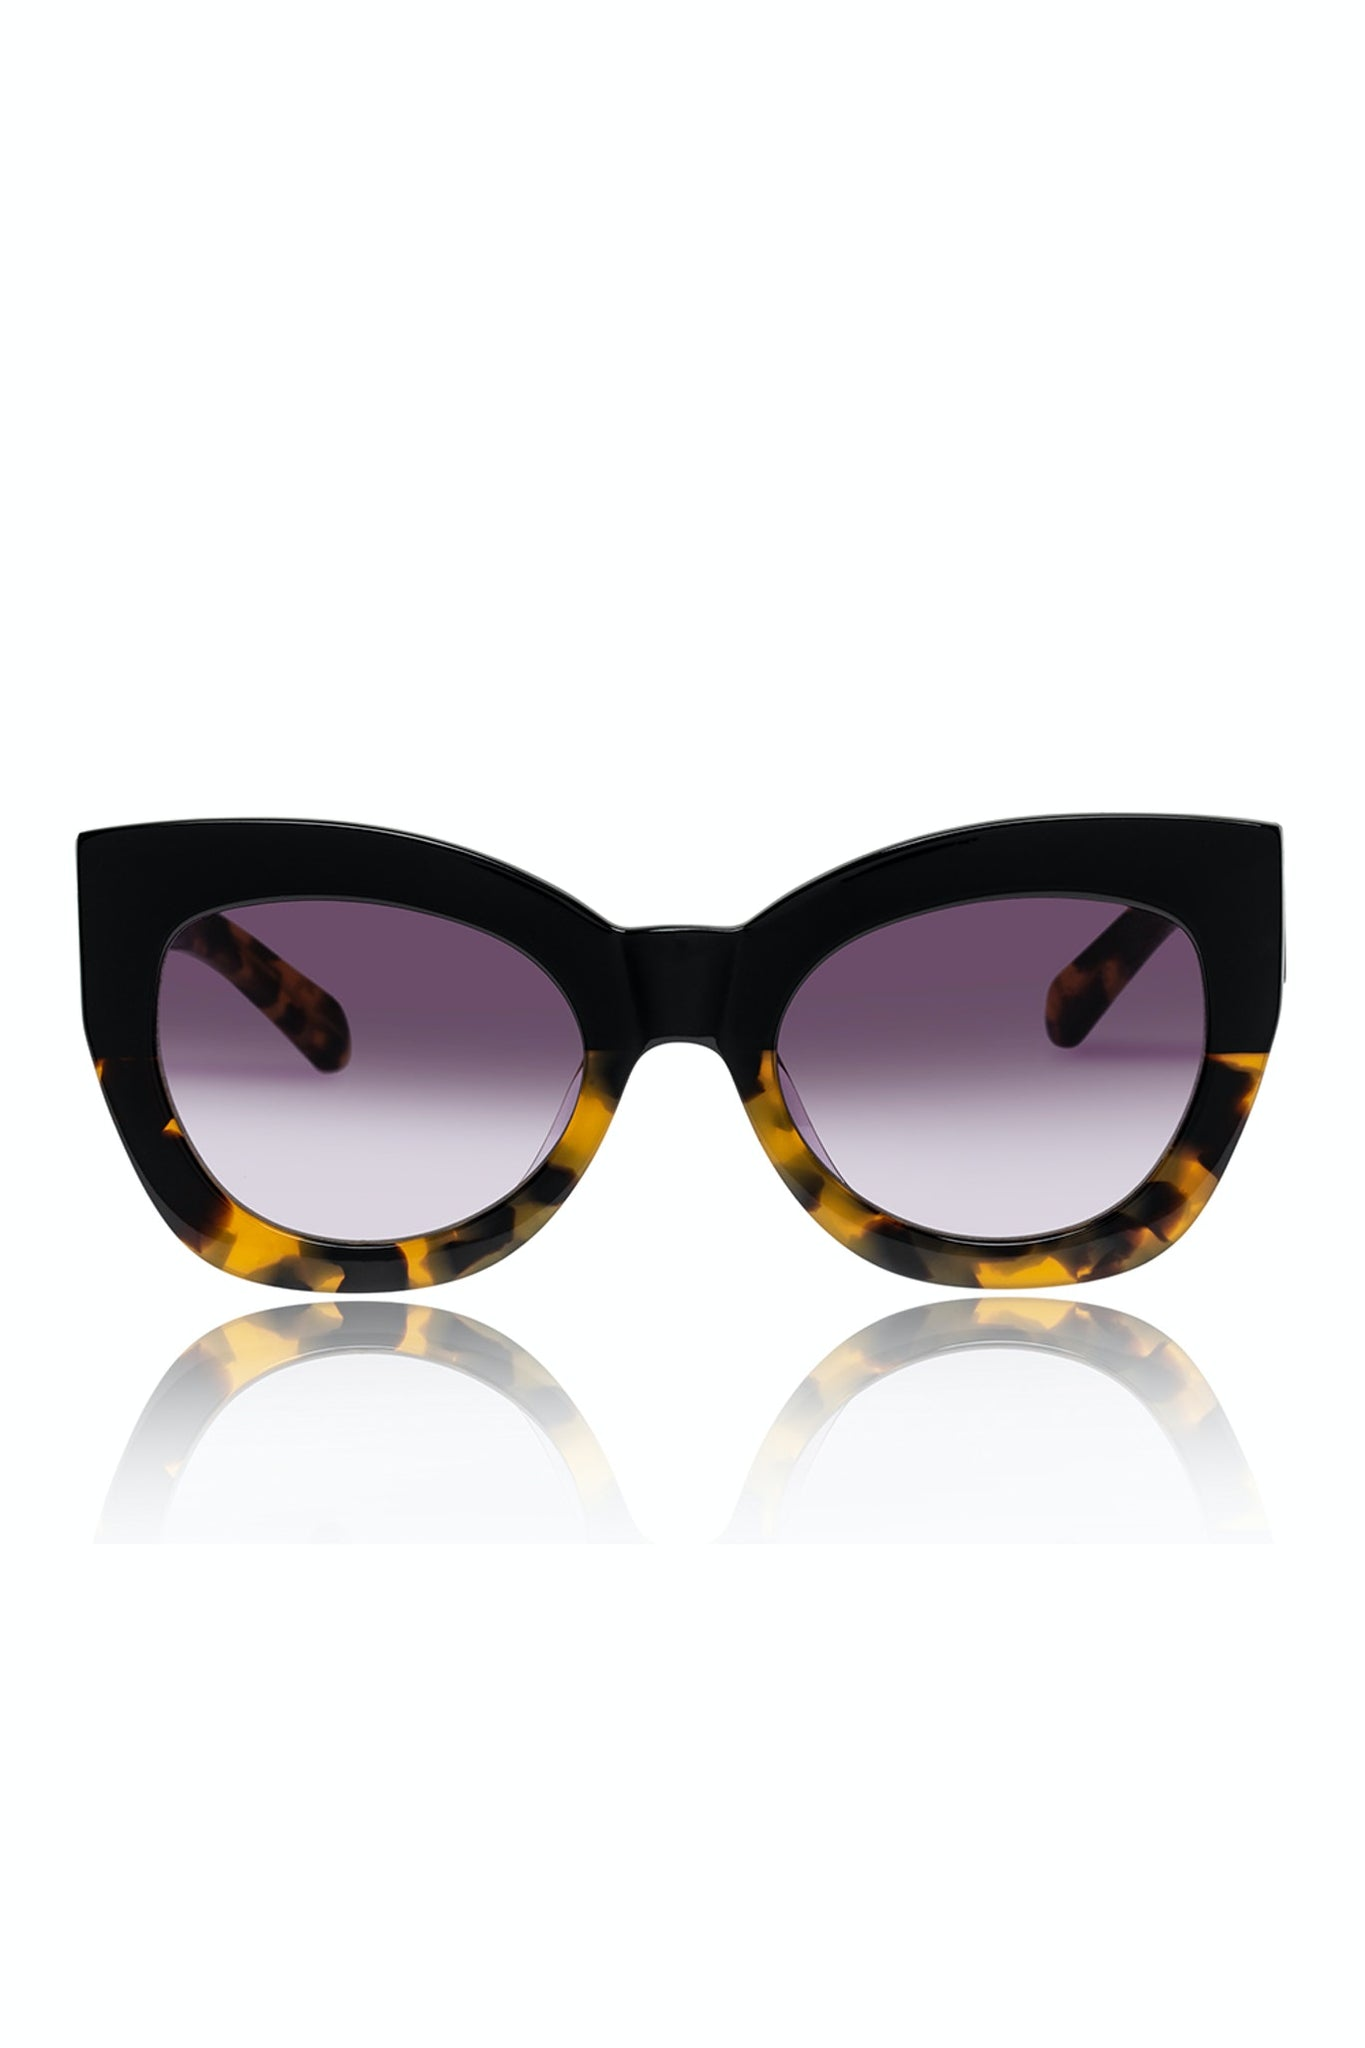 Karen Walker Northern Lights Black/Crazy Tort